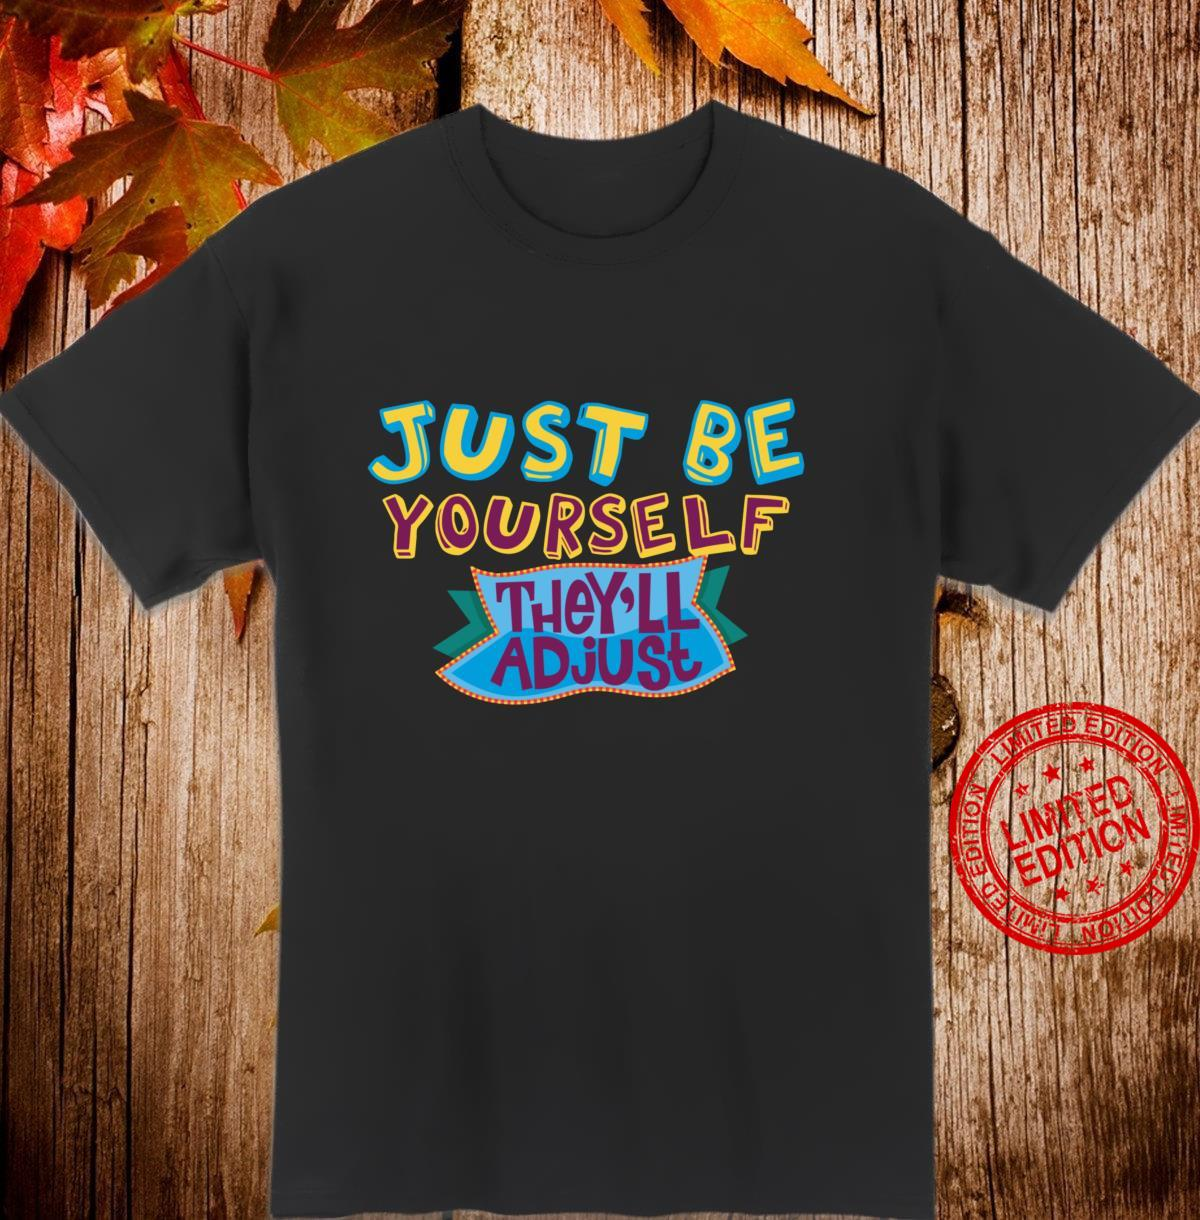 Just Be Yourself They'll Adjust Inspirational Shirt